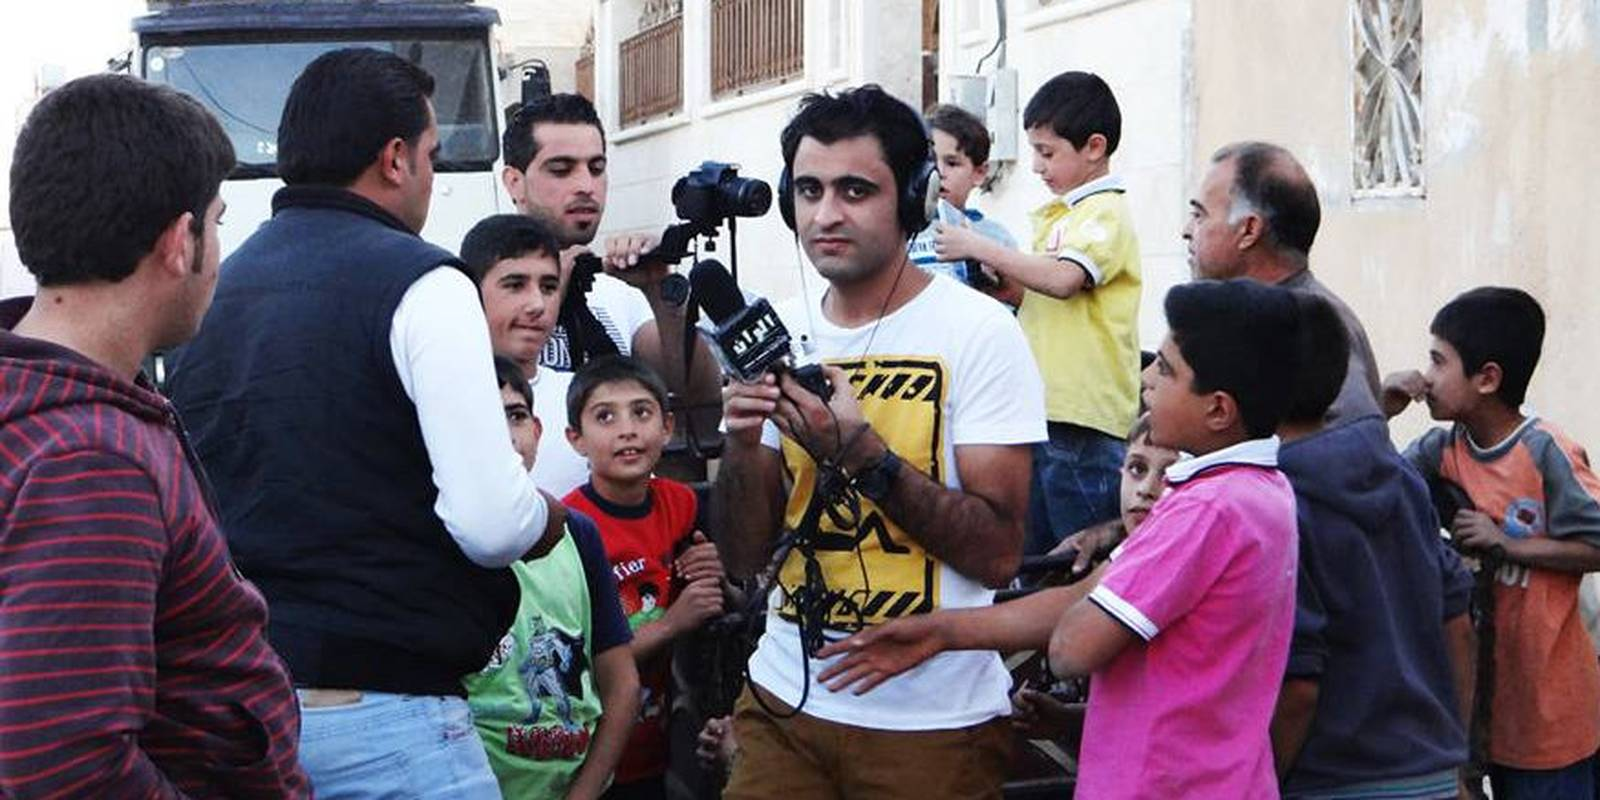 Op-Ed: Syrian Ex-Pats Connect With Citizen Journalists To Shine A Light On Suffering Featured